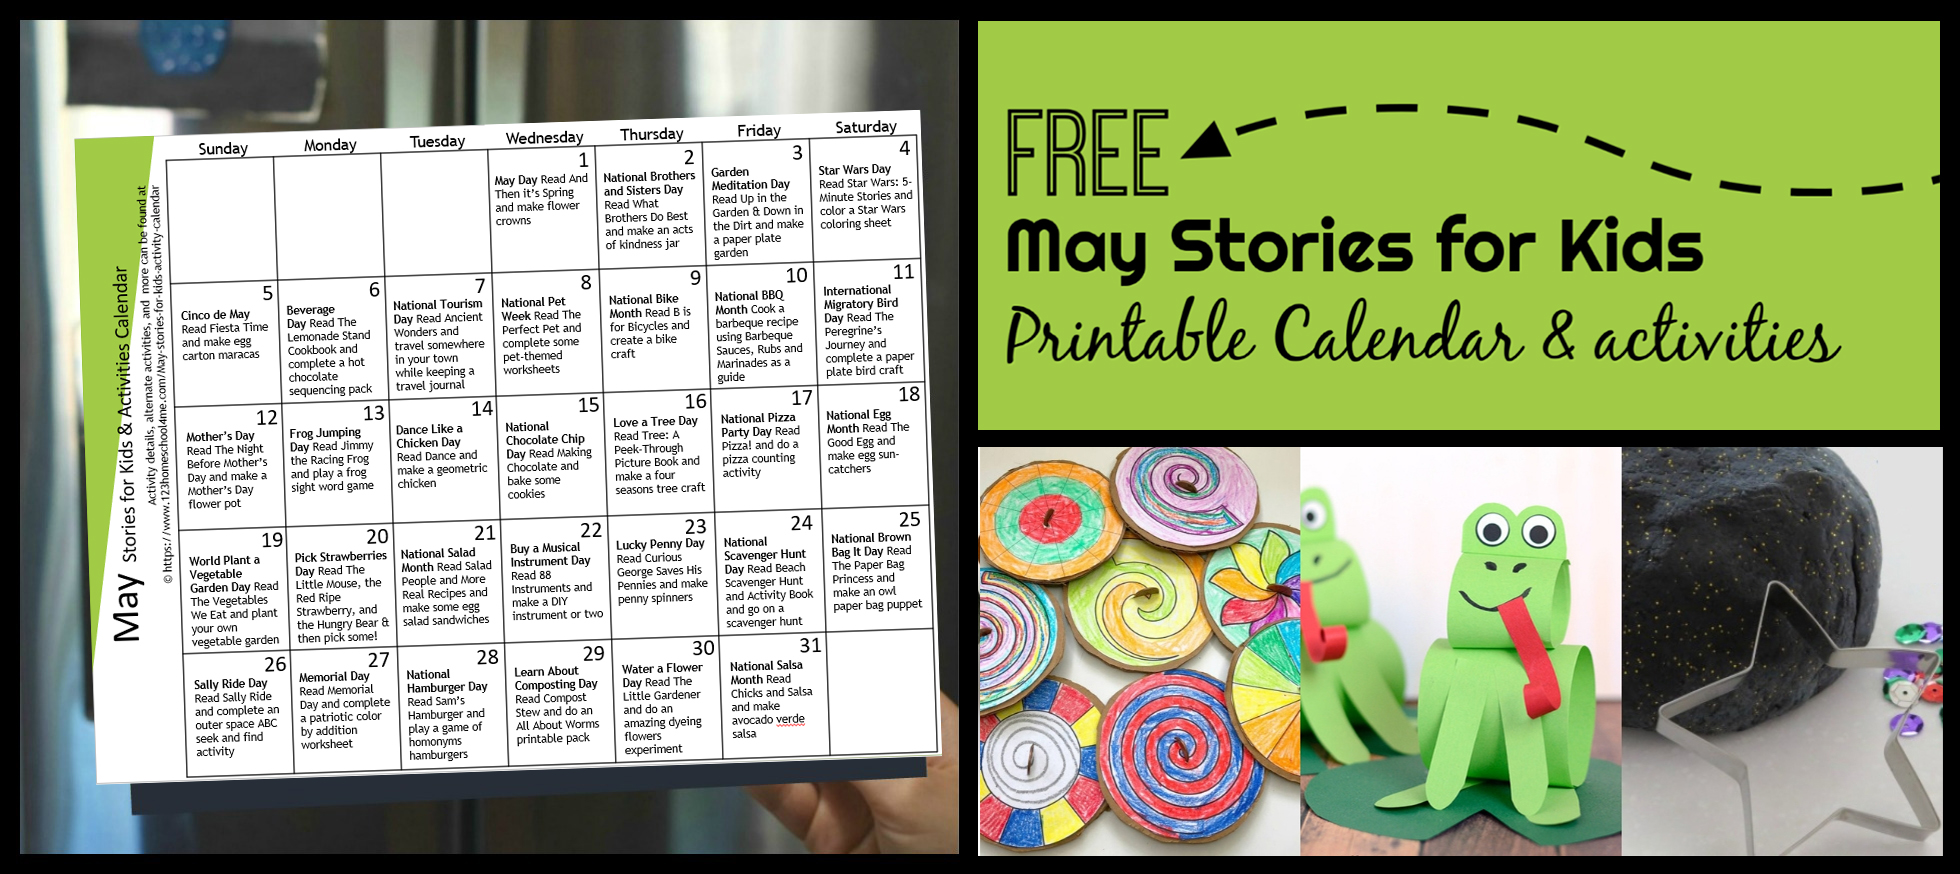 Free May Activity Calendar With Stories For Kids